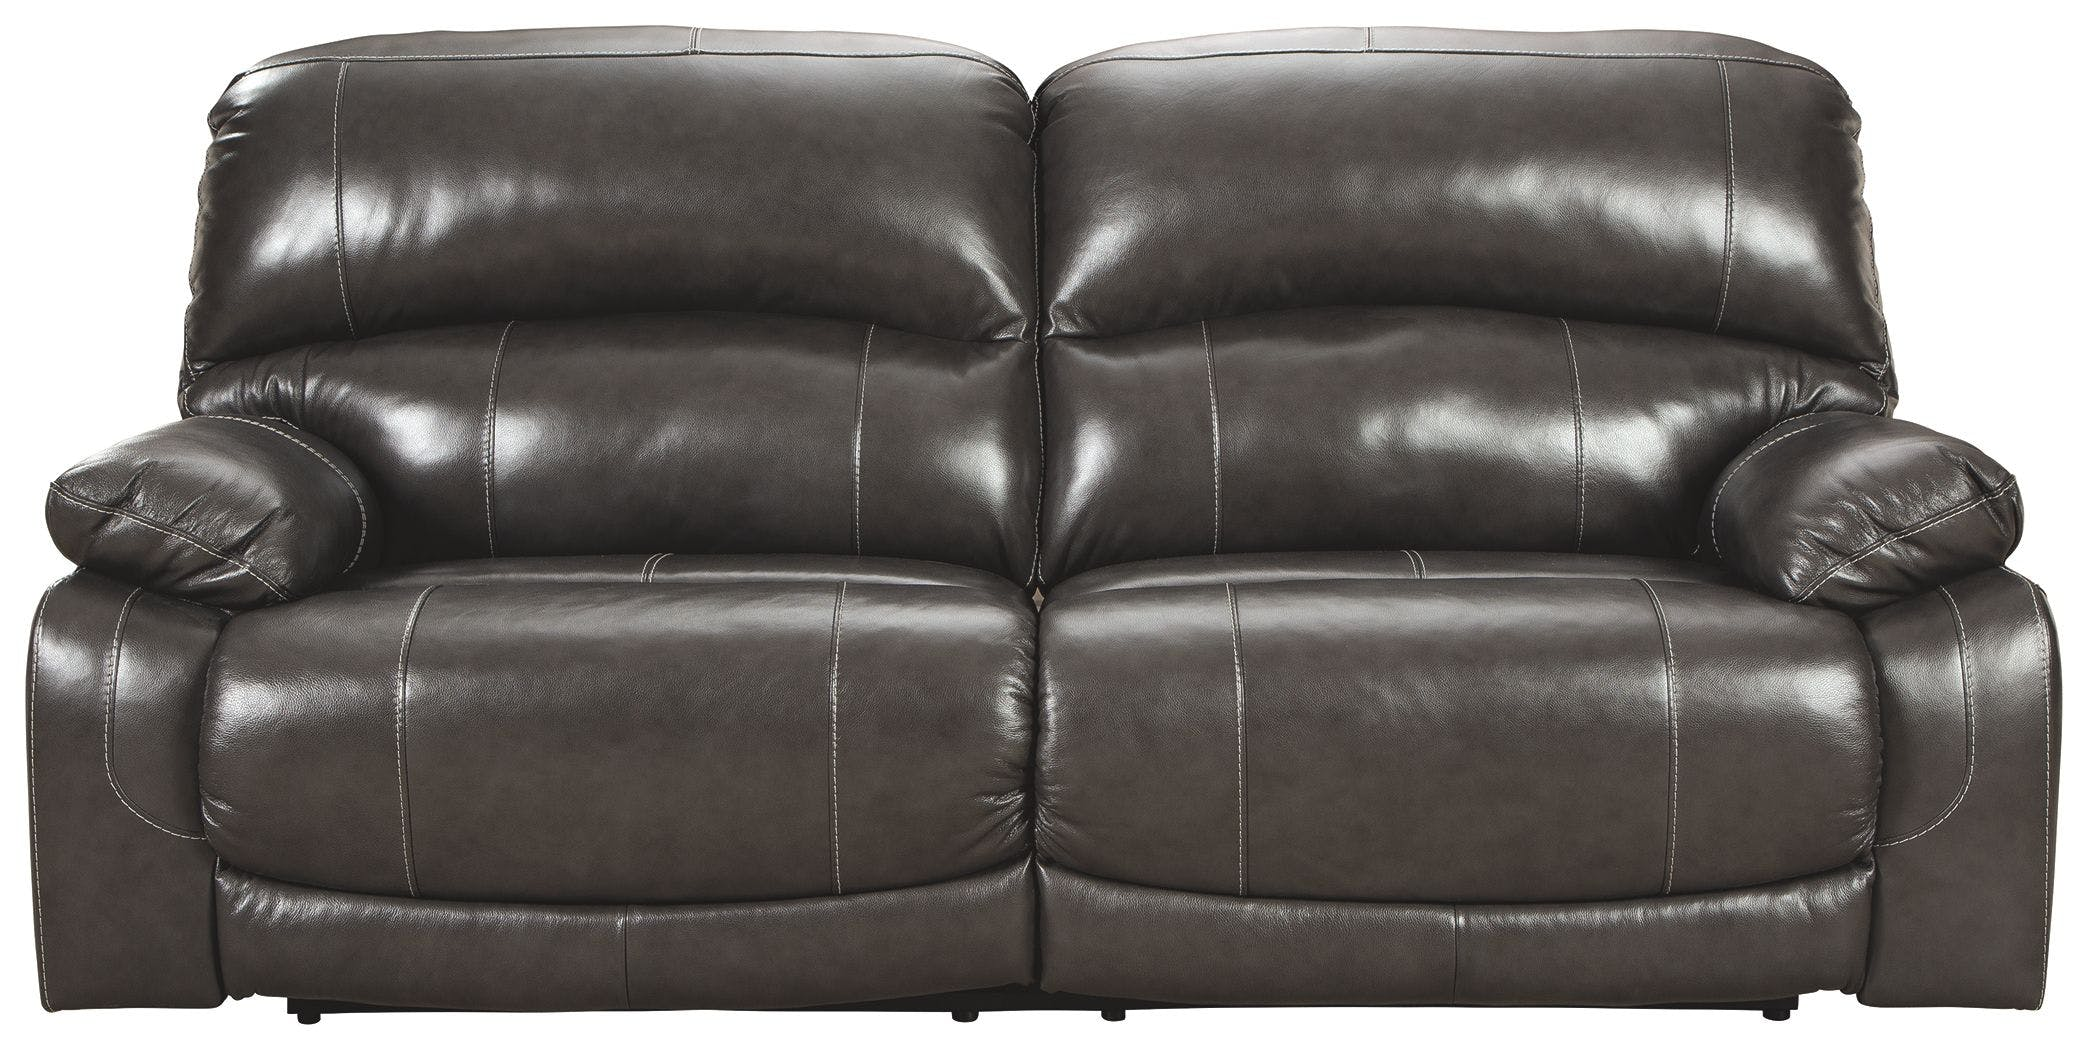 Picture of: Signature Design By Ashley Living Room Hallstrung Power Reclining Sofa U5240347 Furniture Market